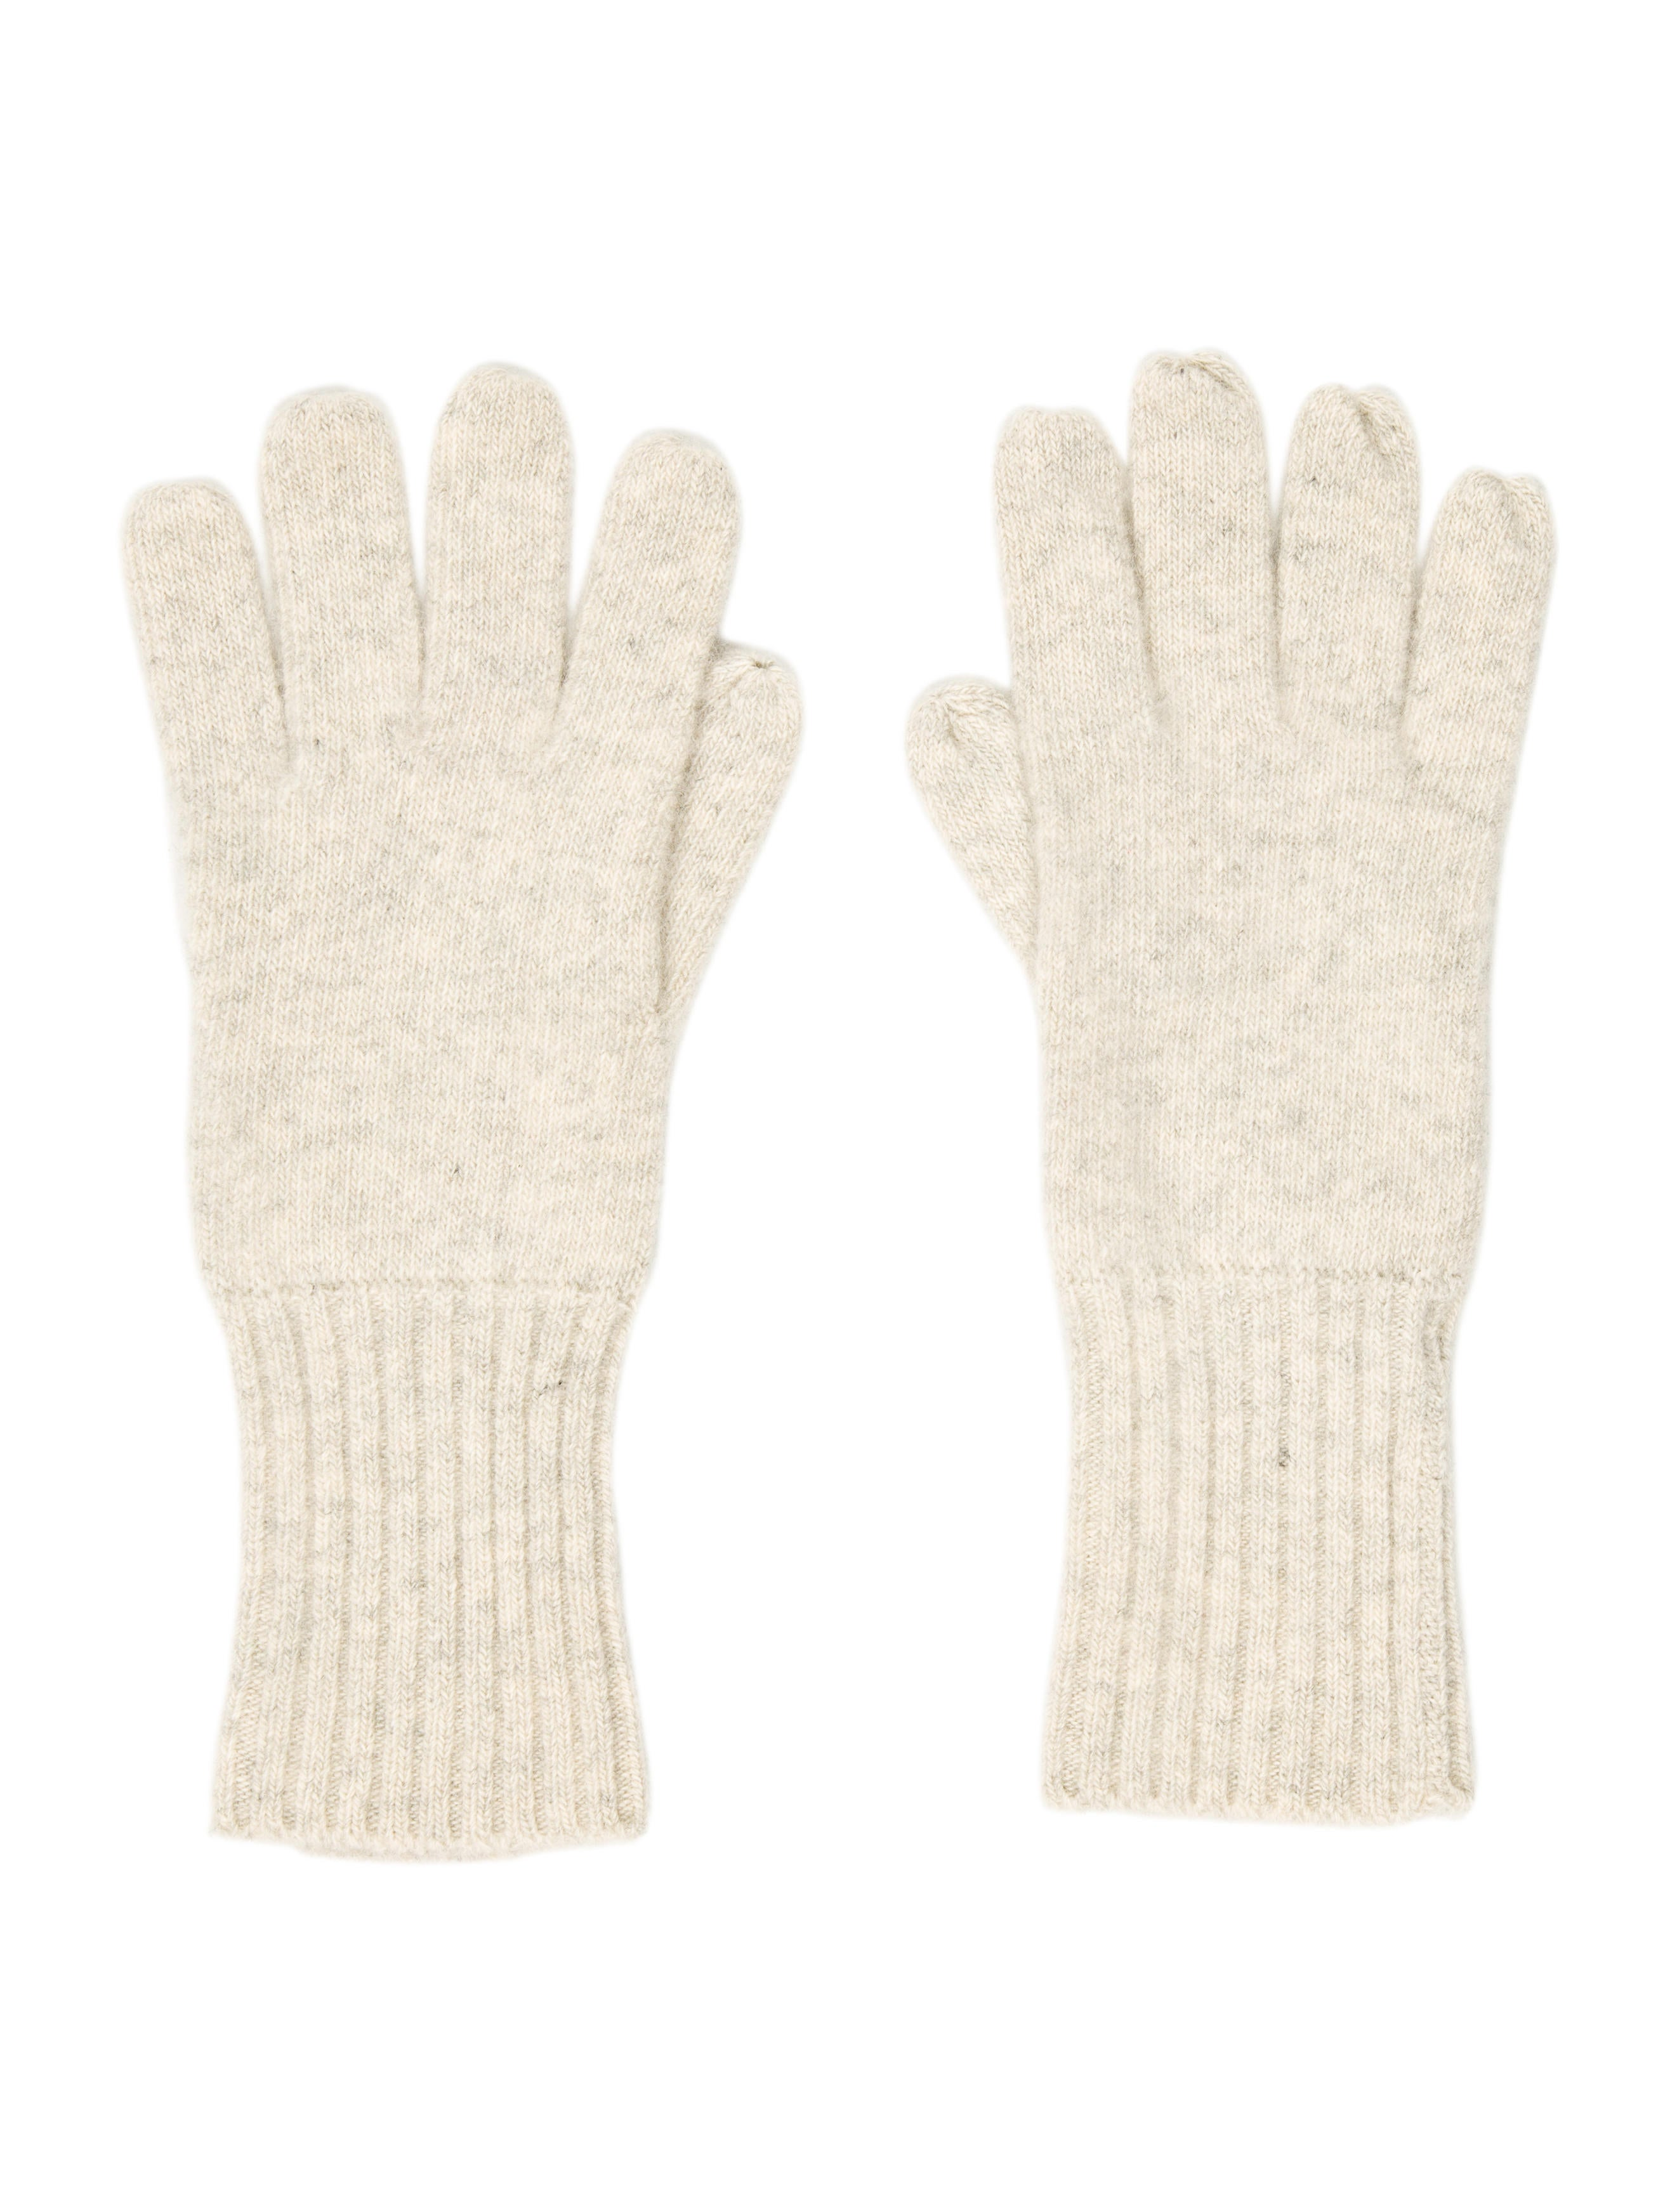 Knitting Pattern Cashmere Gloves : Marc Jacobs Cashmere Rib Knit Gloves - Accessories ...